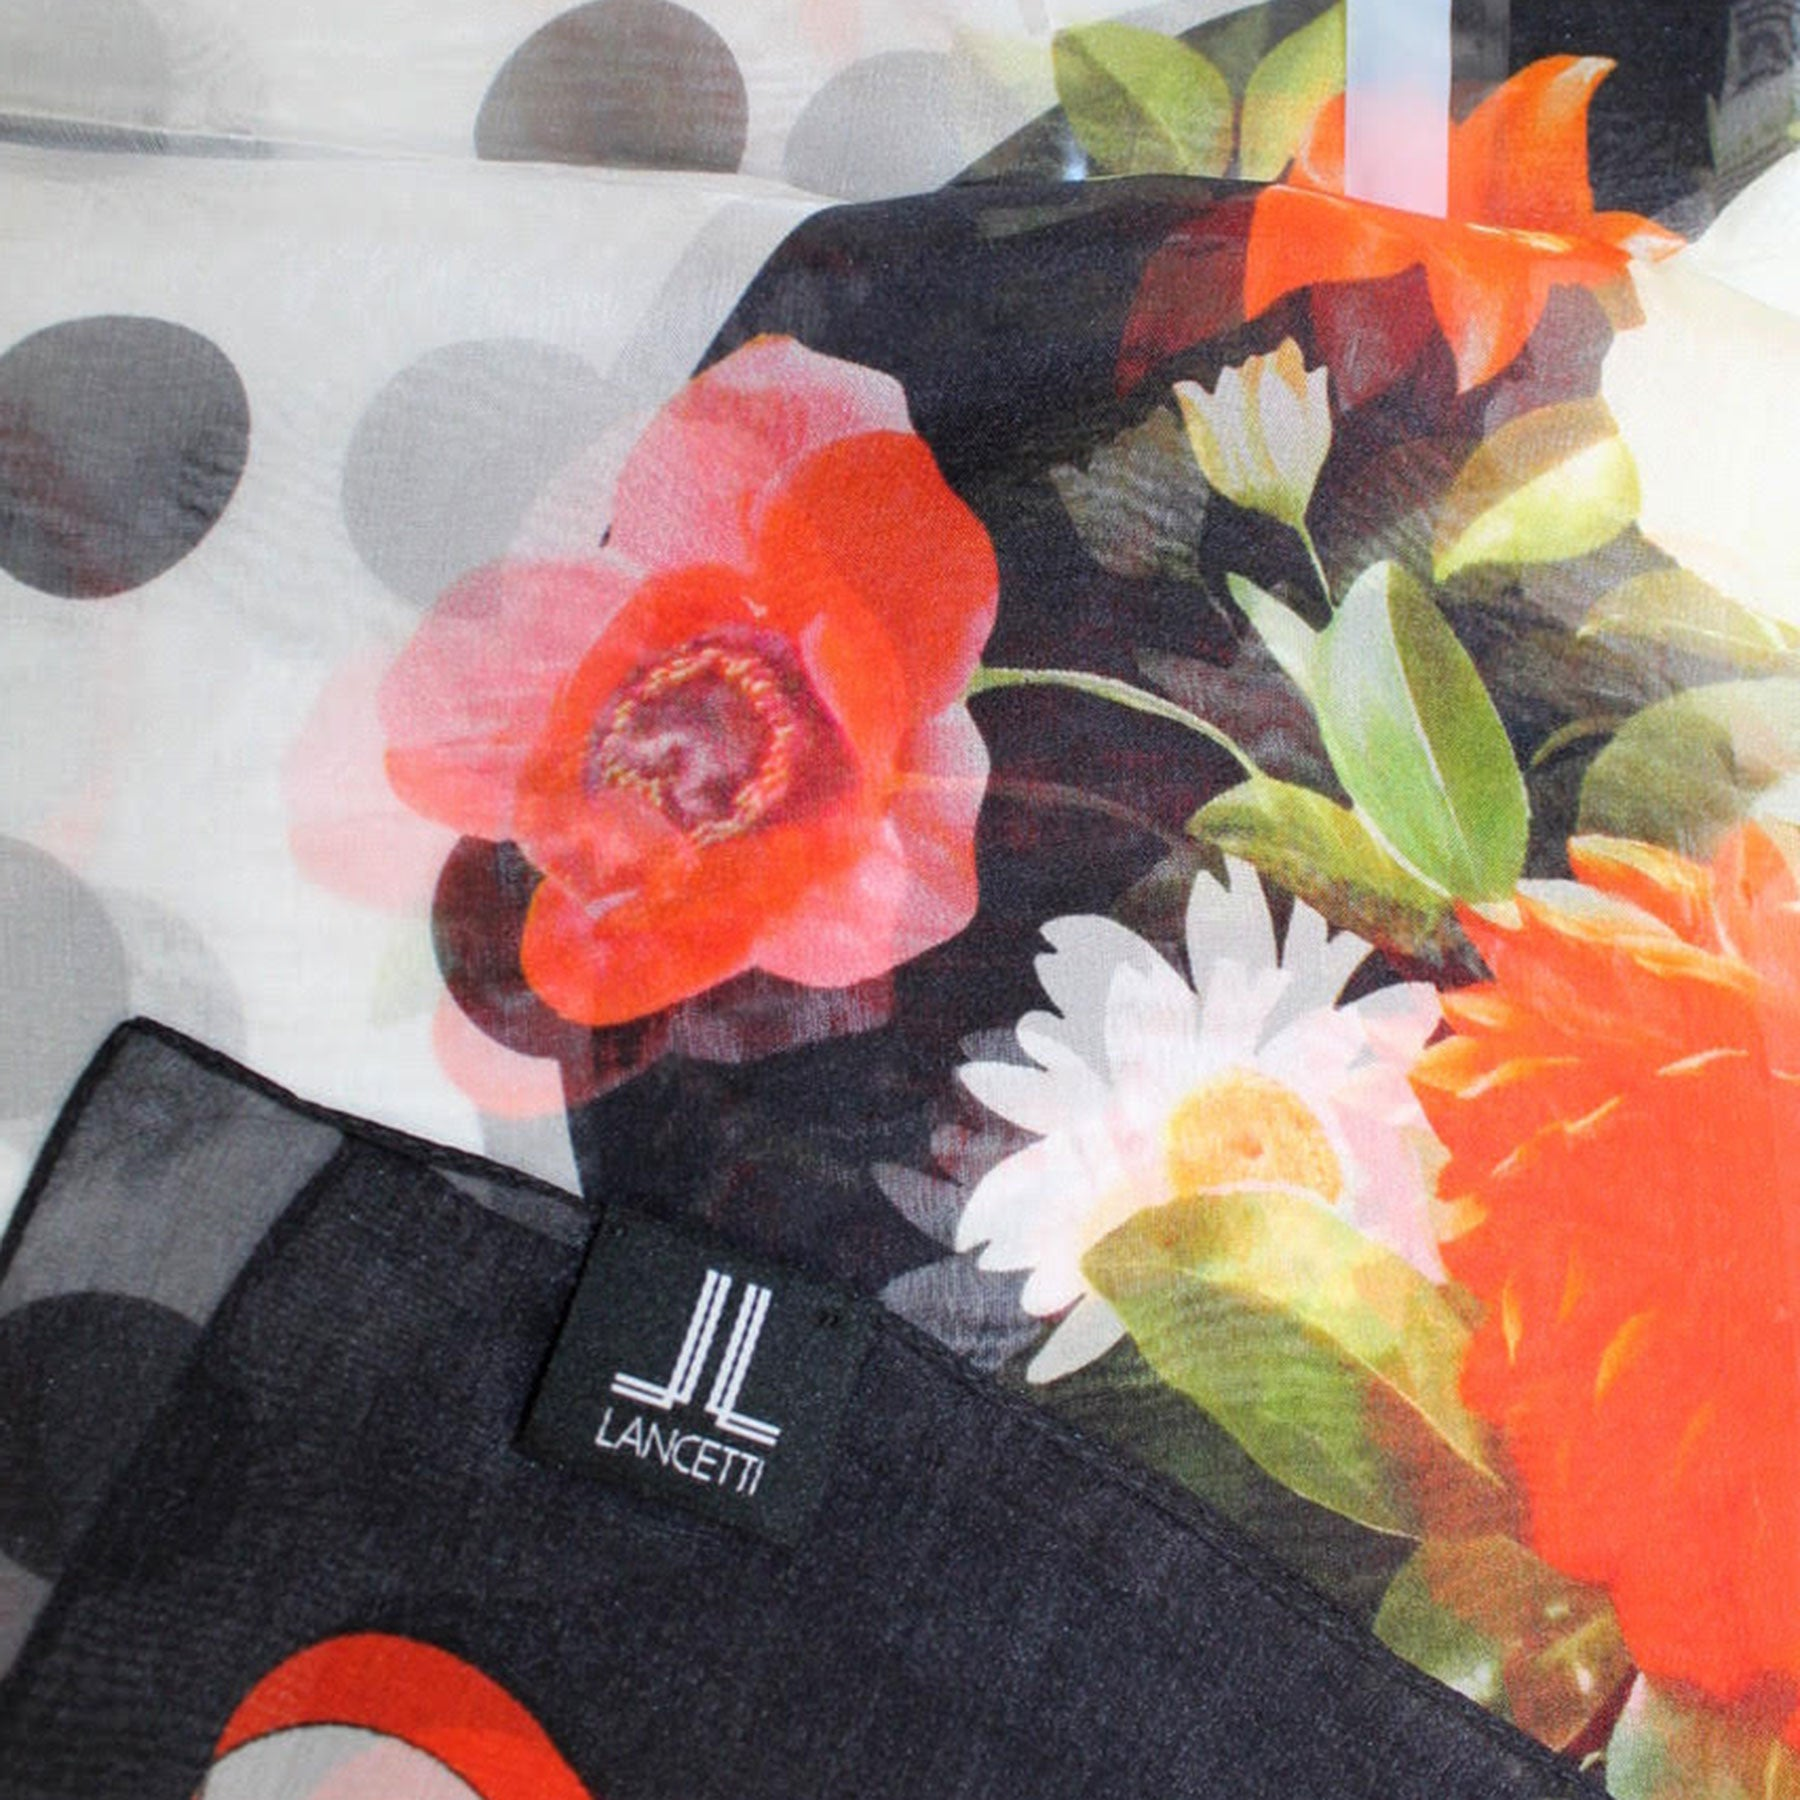 Lancetti Scarf Black Red Floral - Silk Shawl Made In Italy